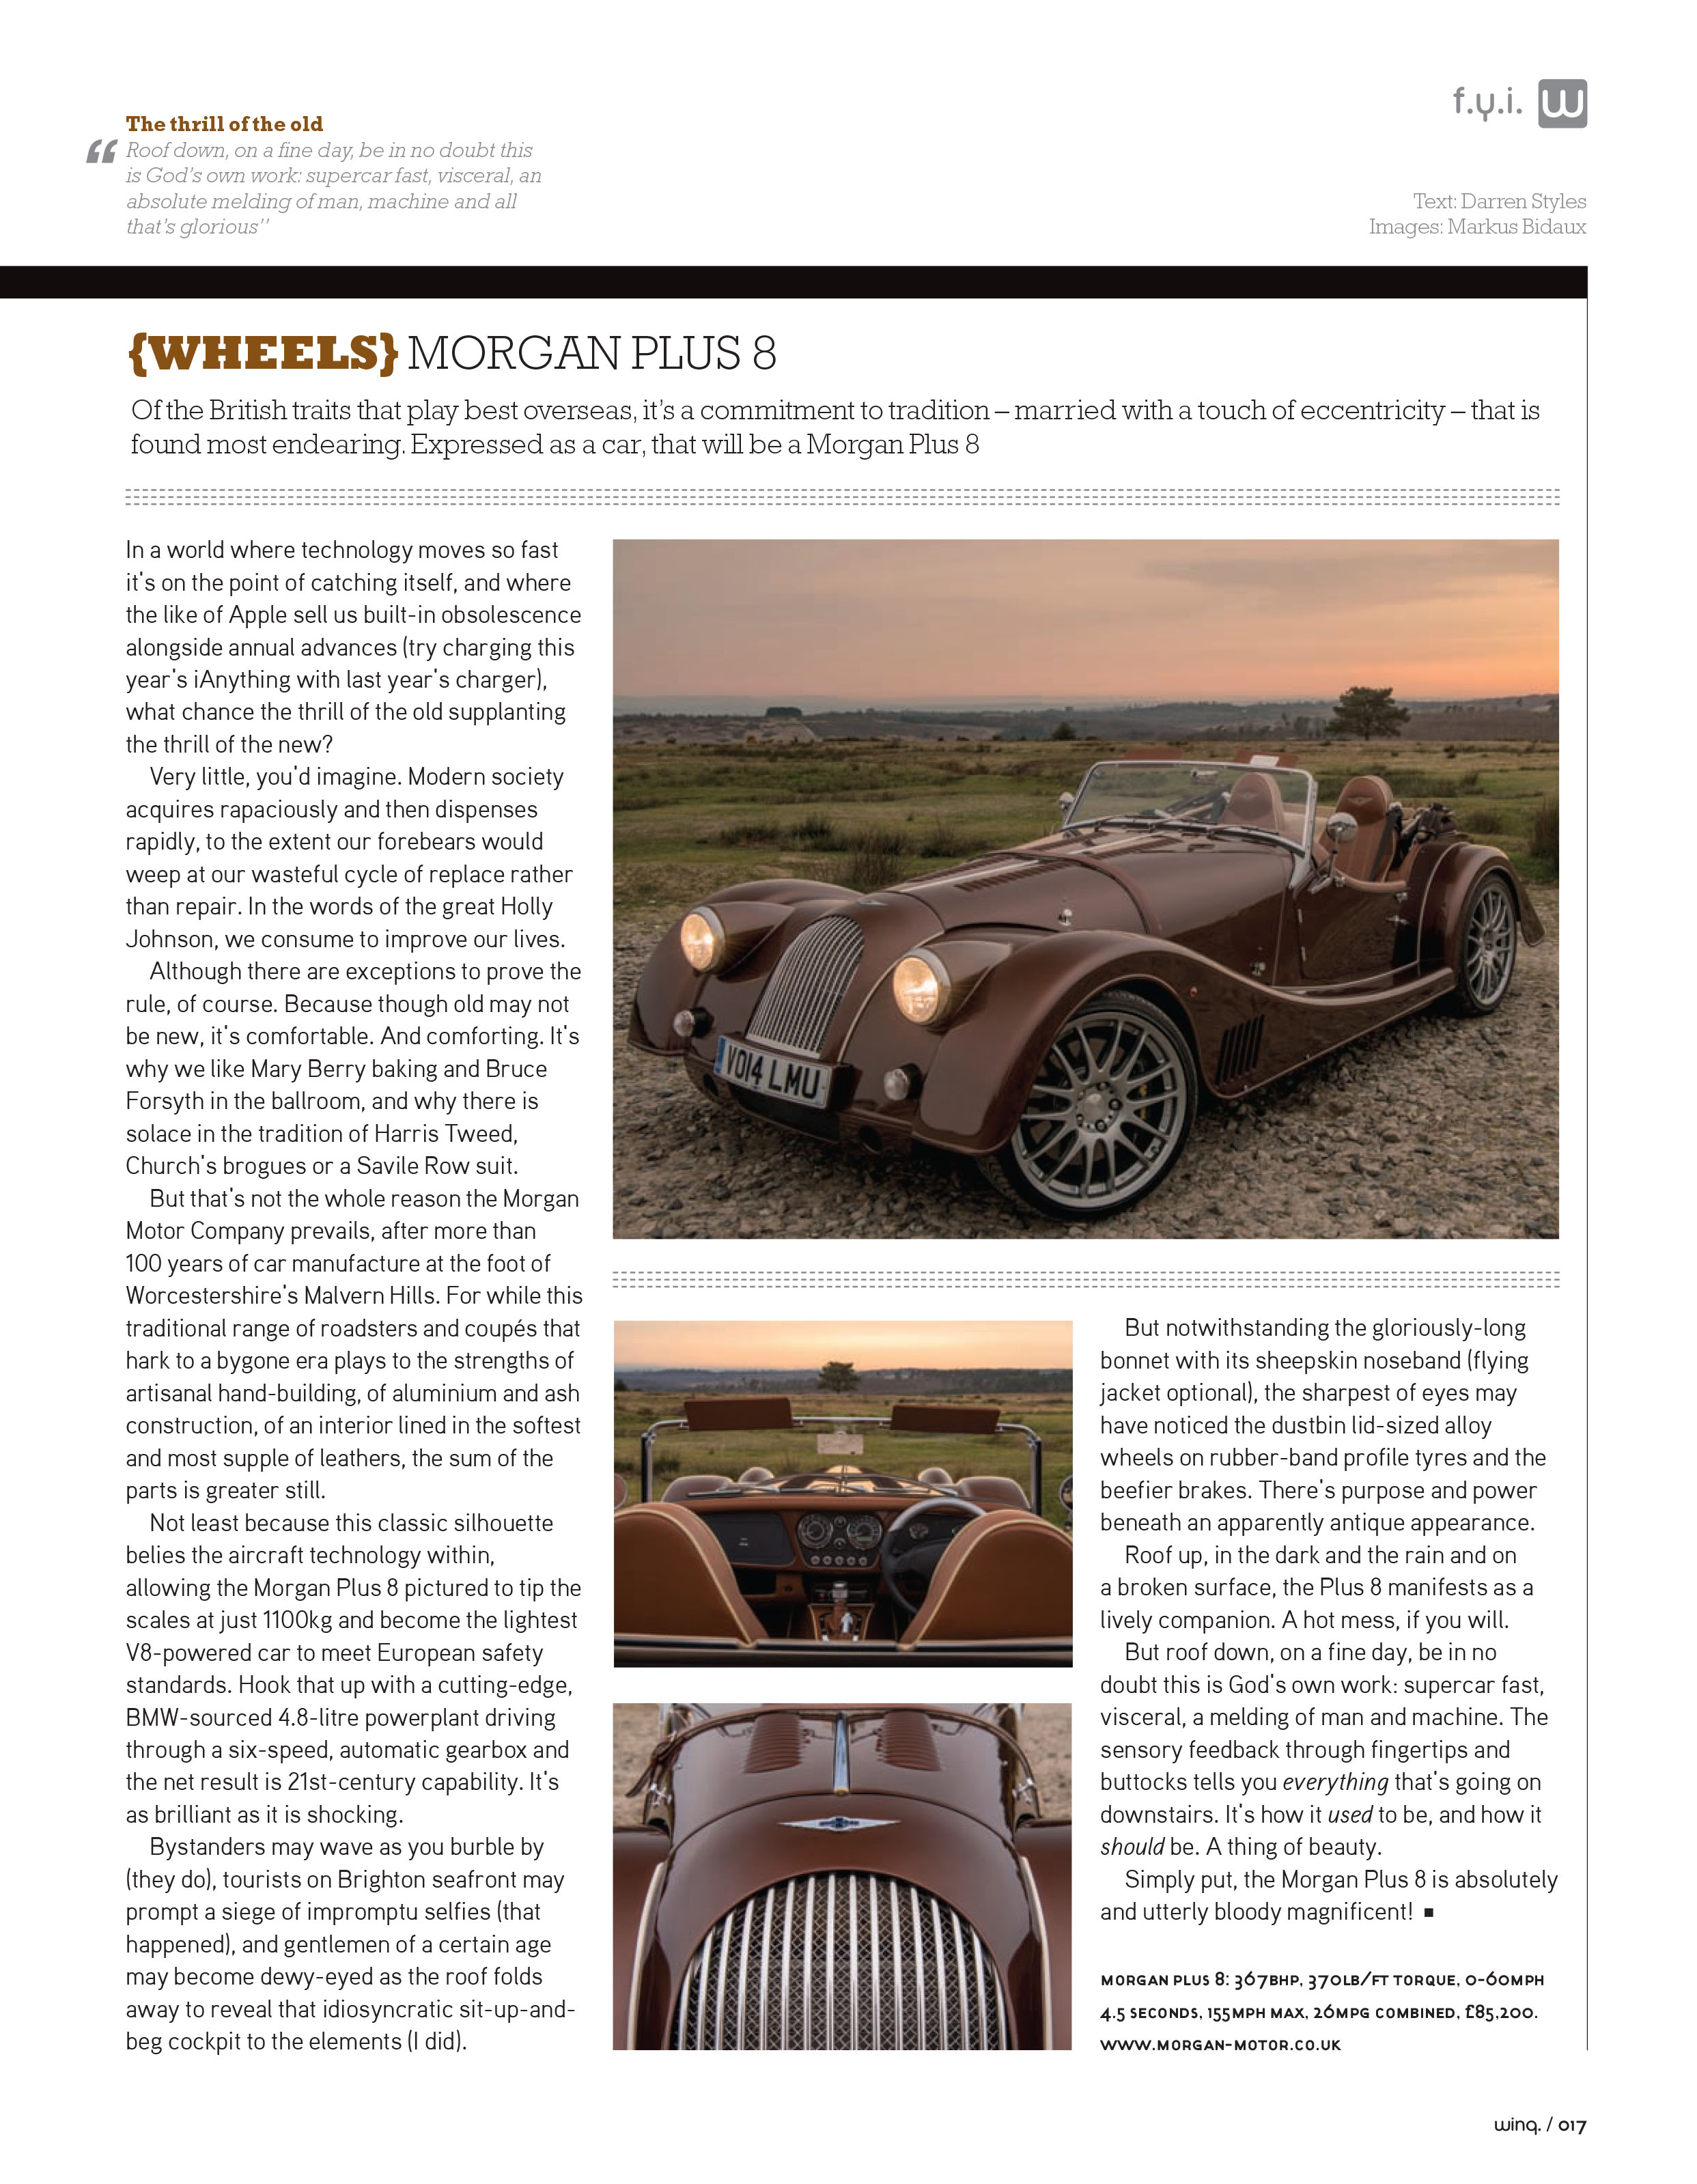 Morgan Plus 8 article